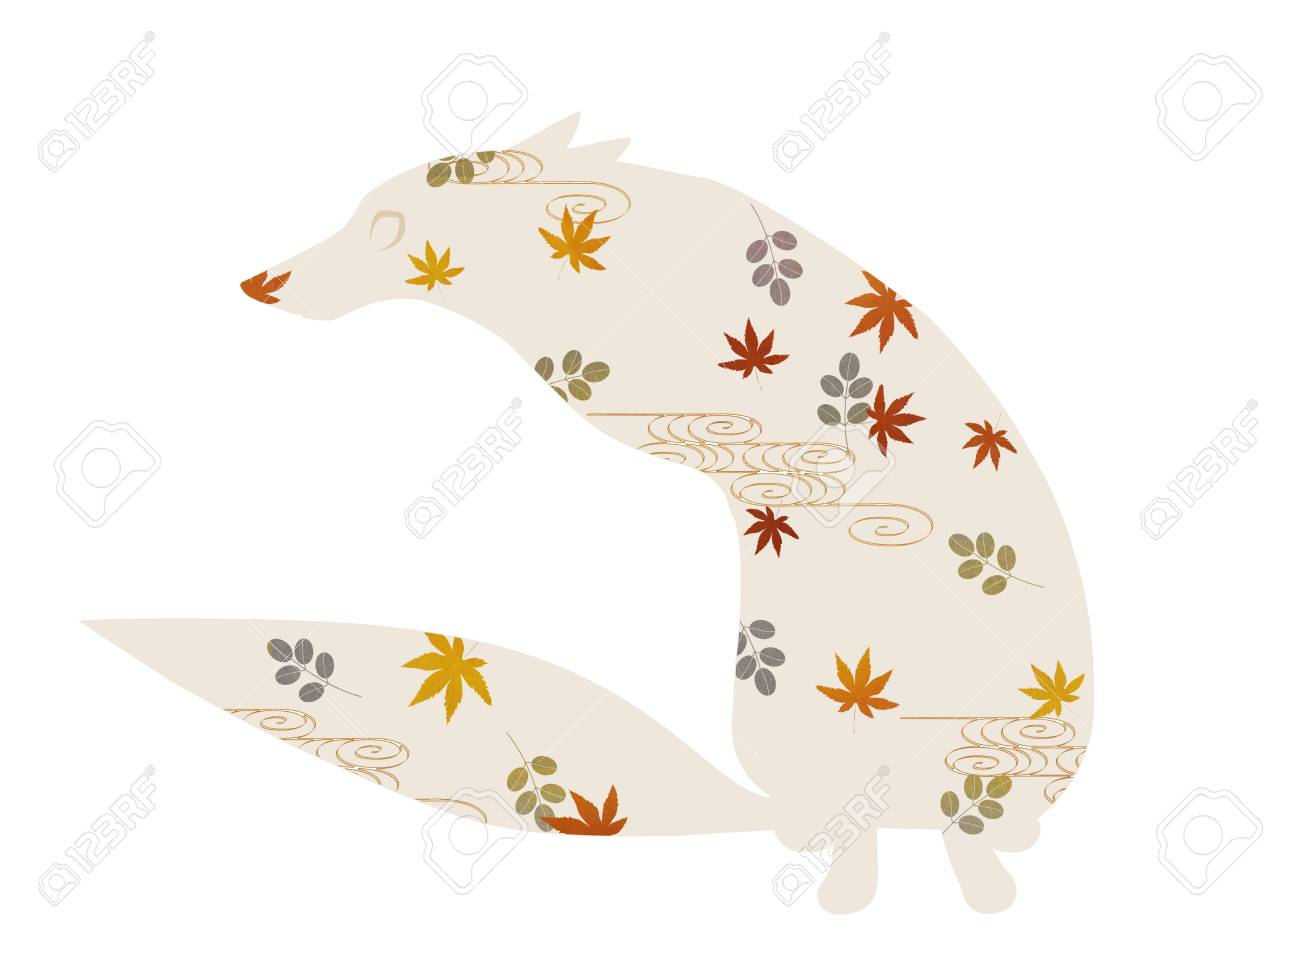 Sitting Fox Silhouette Of Japanese Patterns Stock Photo Picture And